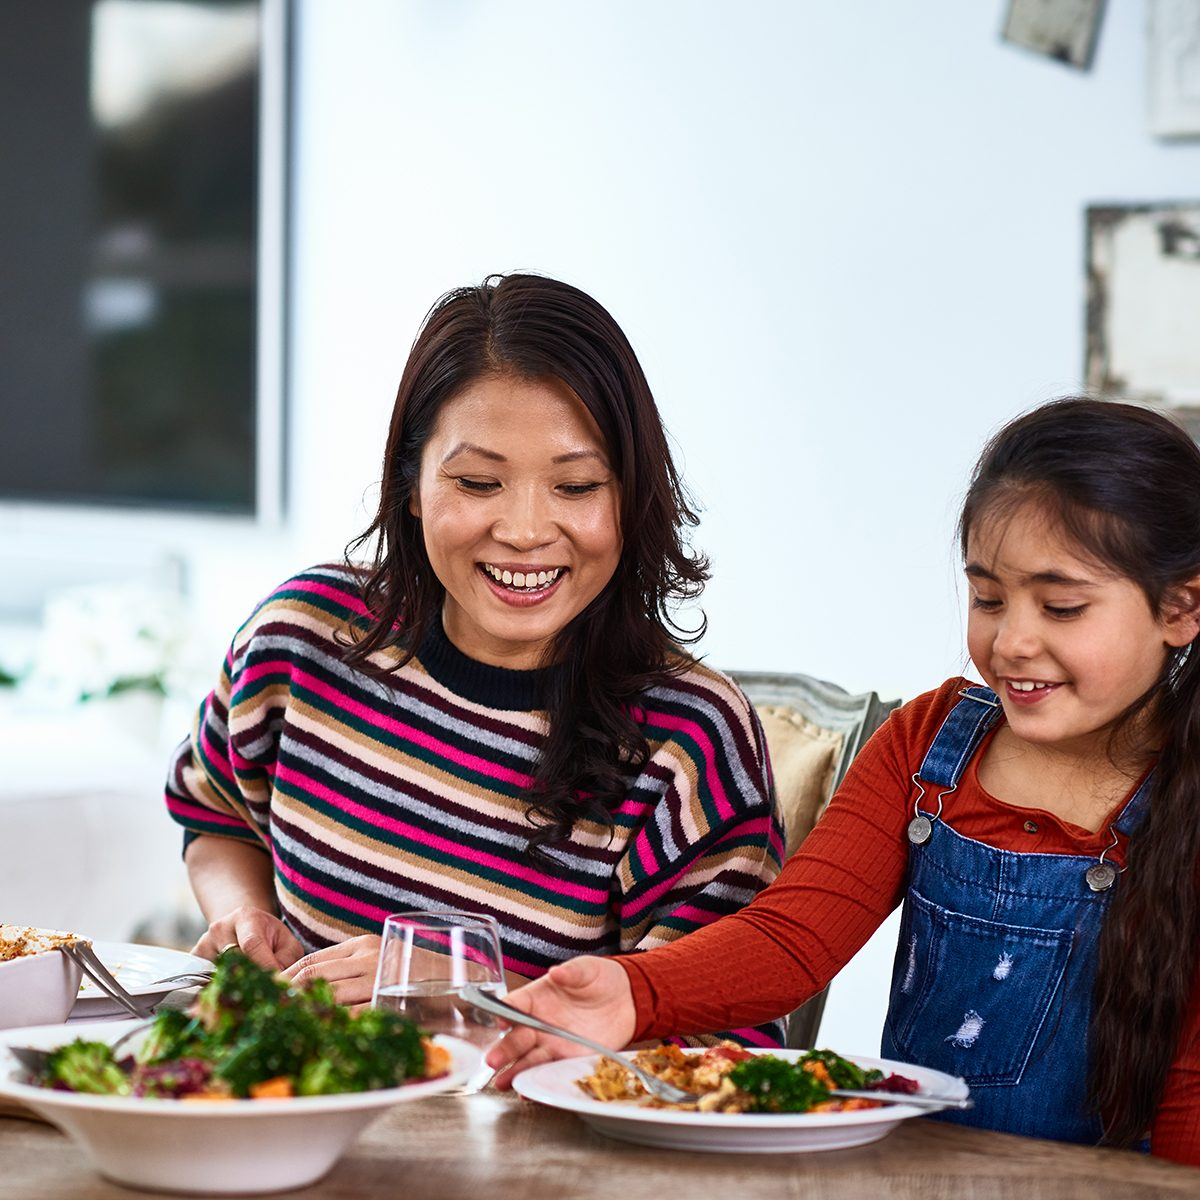 Cheerful family dinner in dining room, mid adult woman smiling at daughter eating food, good choice, positive parenting